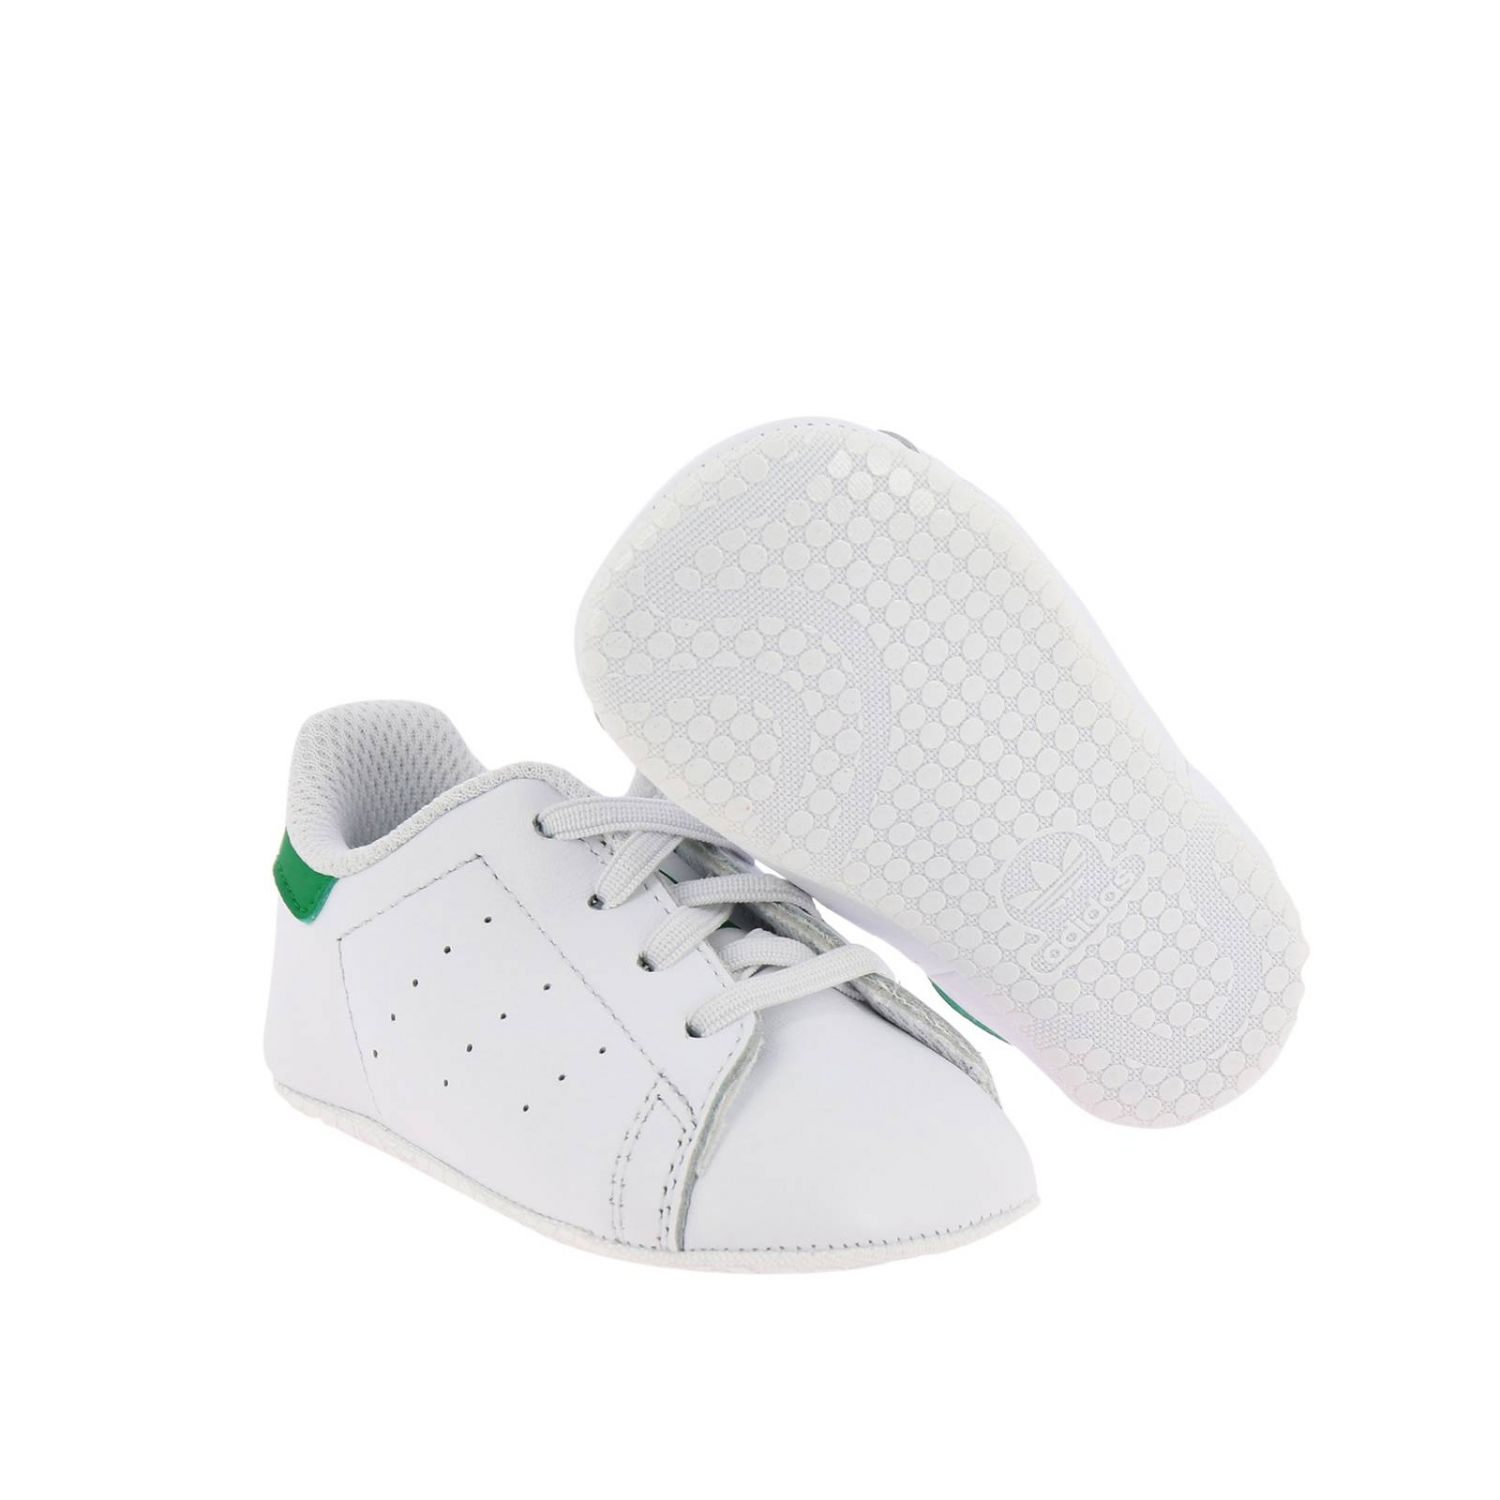 various styles no sale tax cheap sale Chaussures Adidas Originals Enfant | Chaussures Enfant Adidas ...